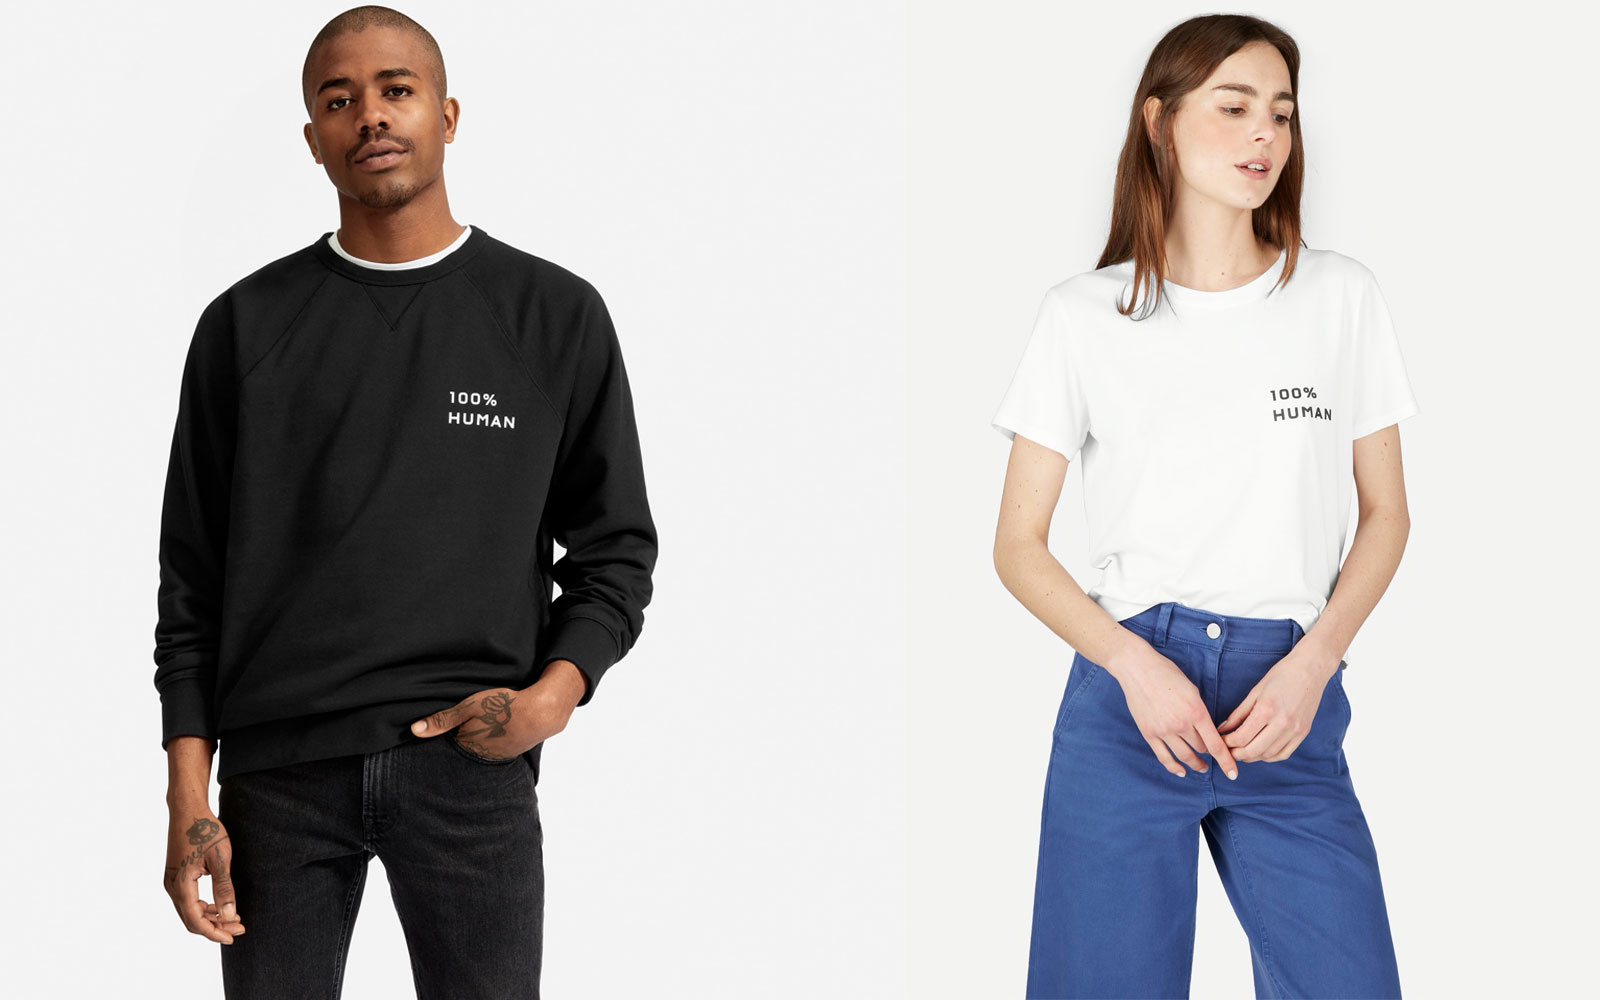 Man and woman wearing black and white sweatshirt and t-shirt